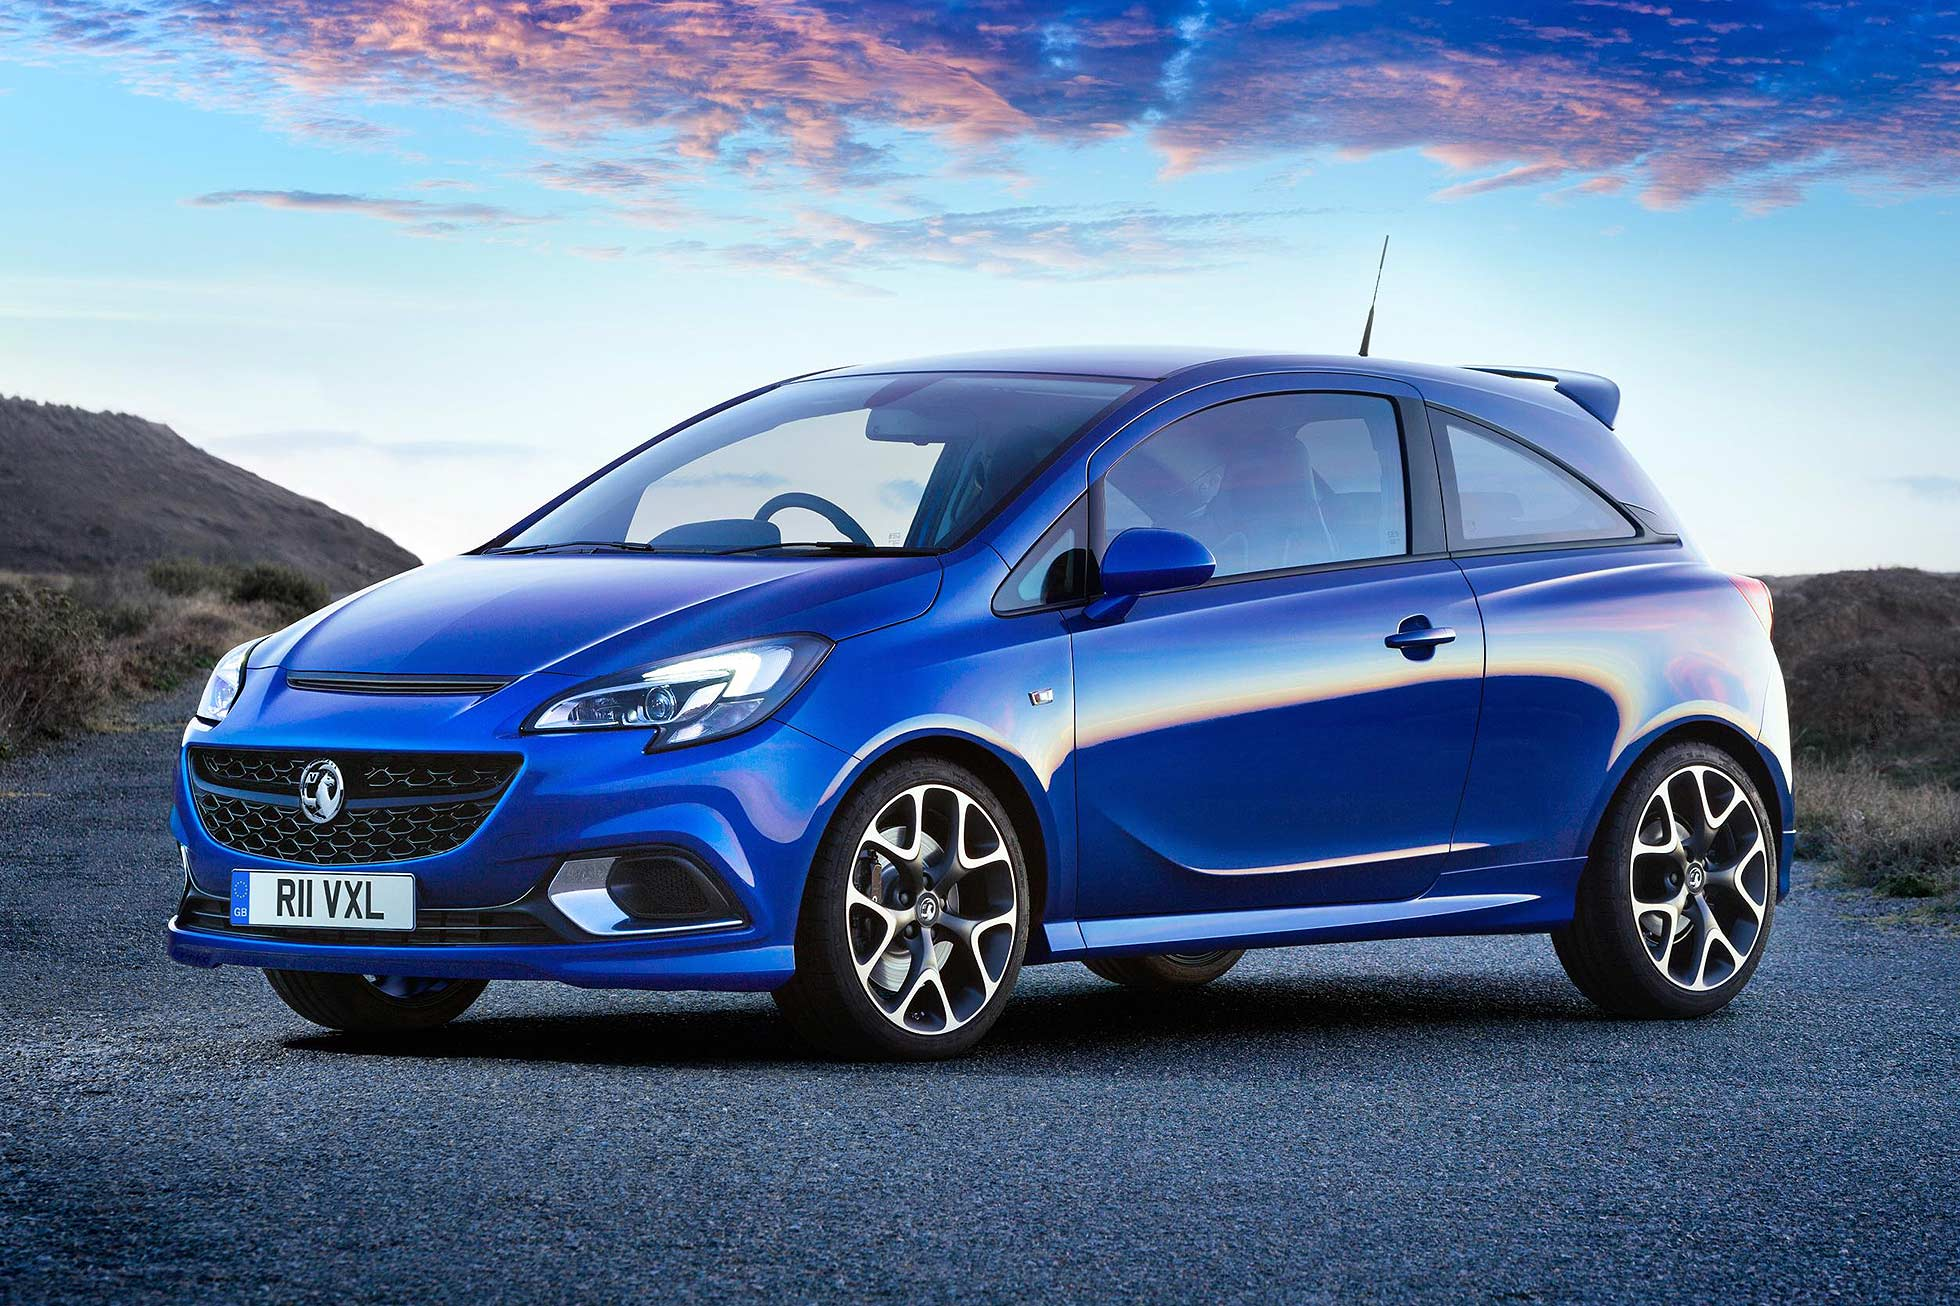 The Motoring World: FLEET WORLD - The Vauxhall Corsa takes the Best Supermini title in the ...